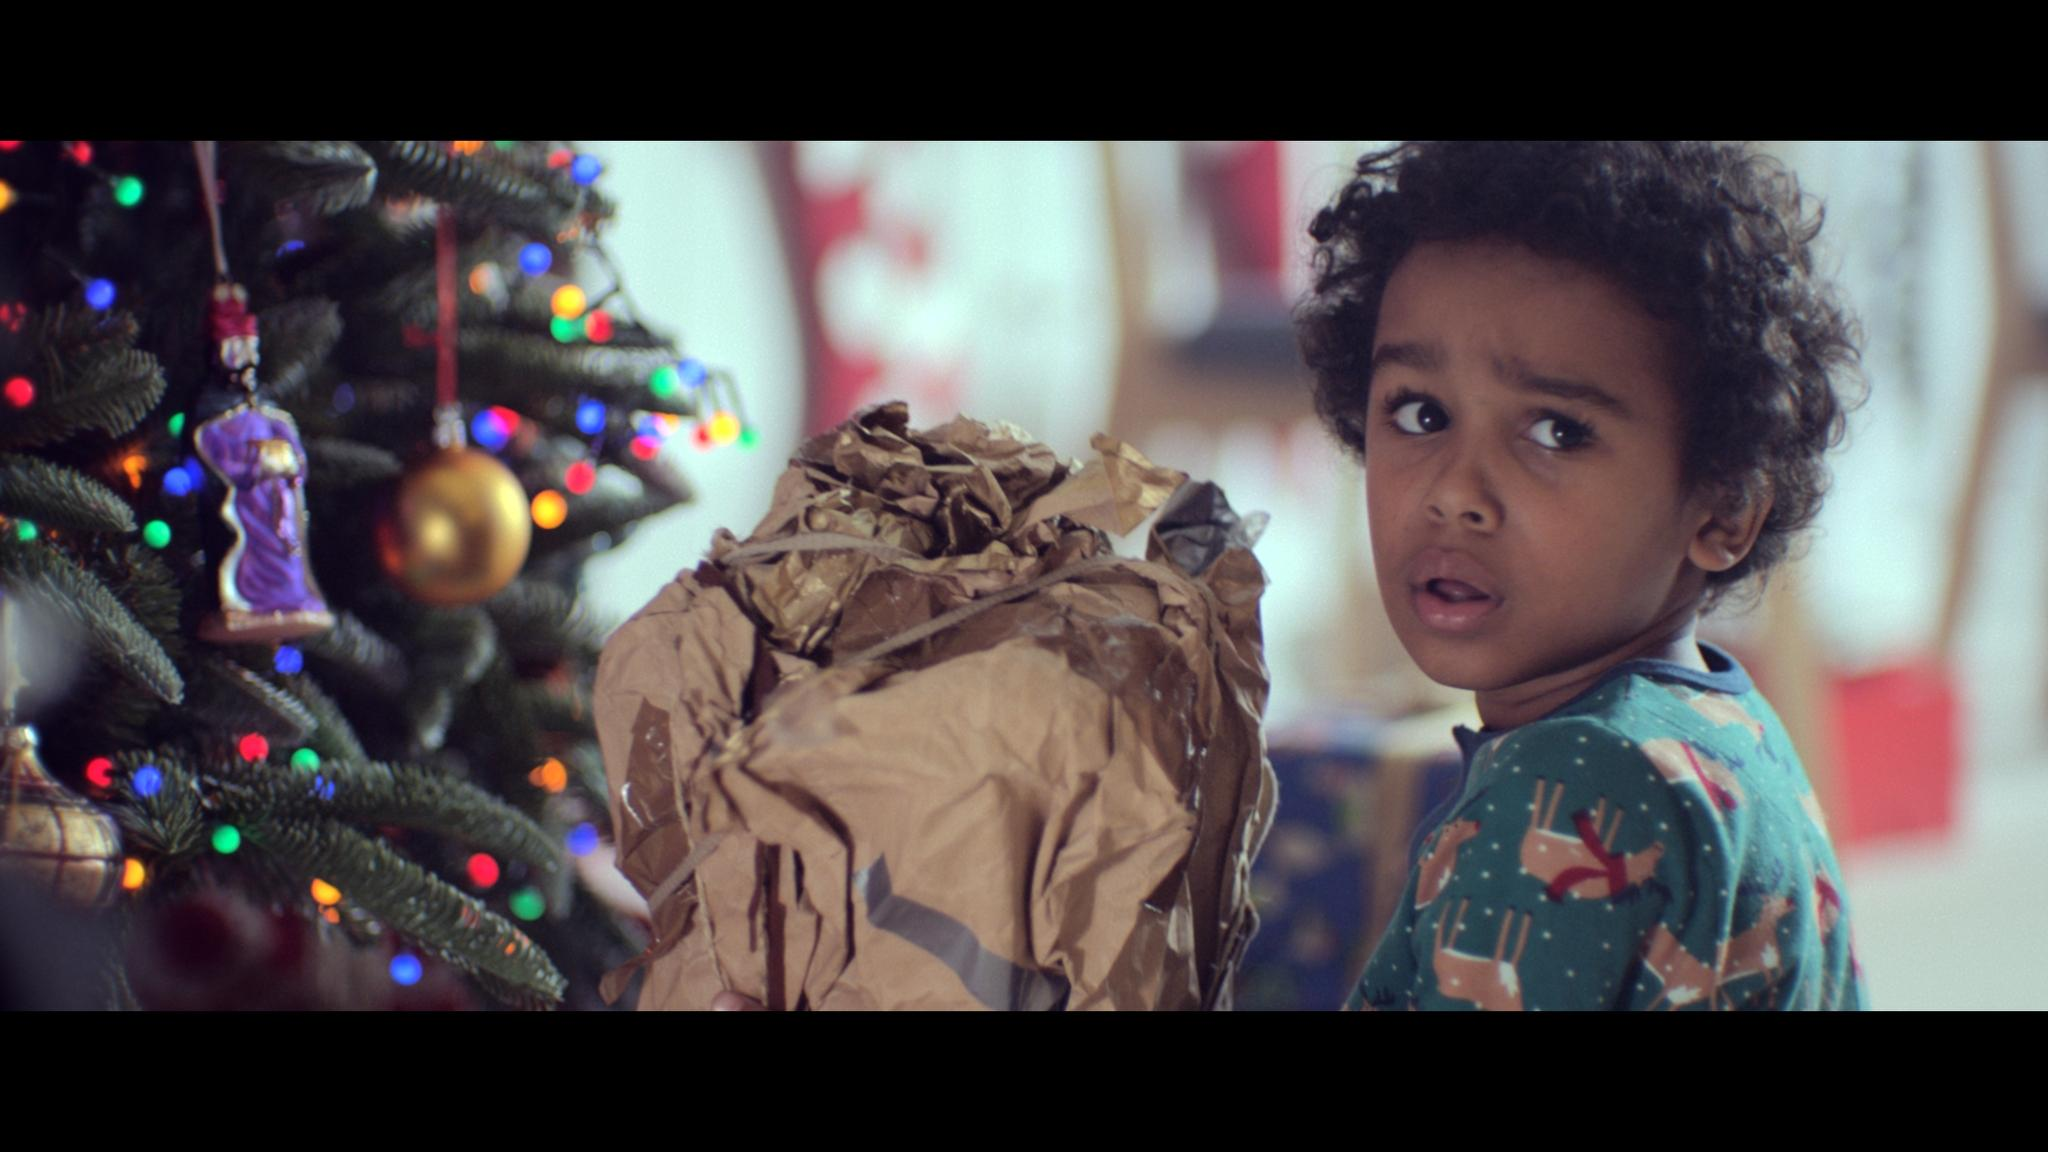 John Lewis Christmas Advert 2017.John Lewis Christmas Advert Receives Overwhelmingly Positive